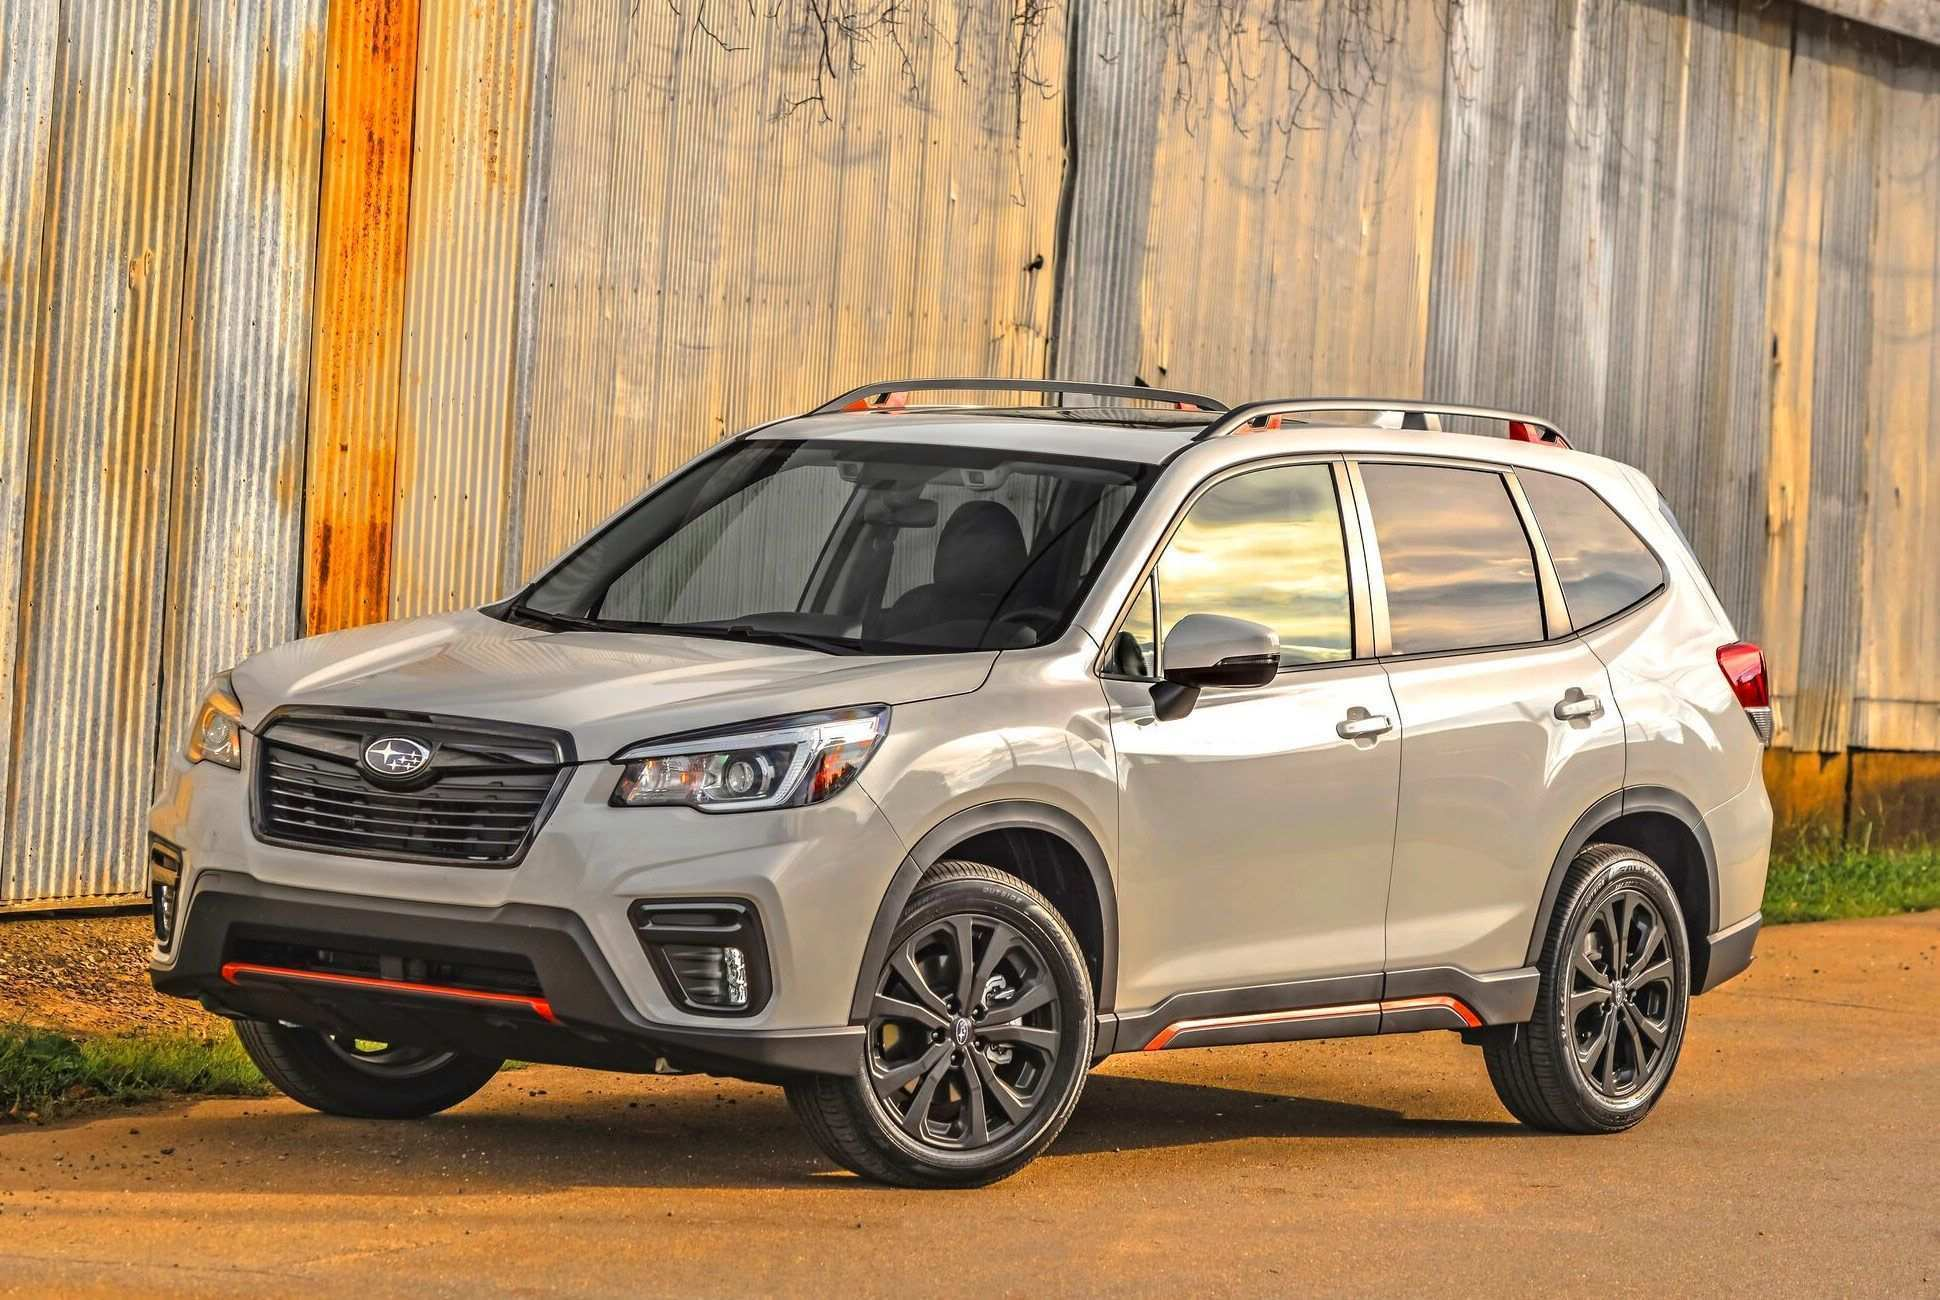 52 The Best Subaru Forester 2019 Ground Clearance New Concept